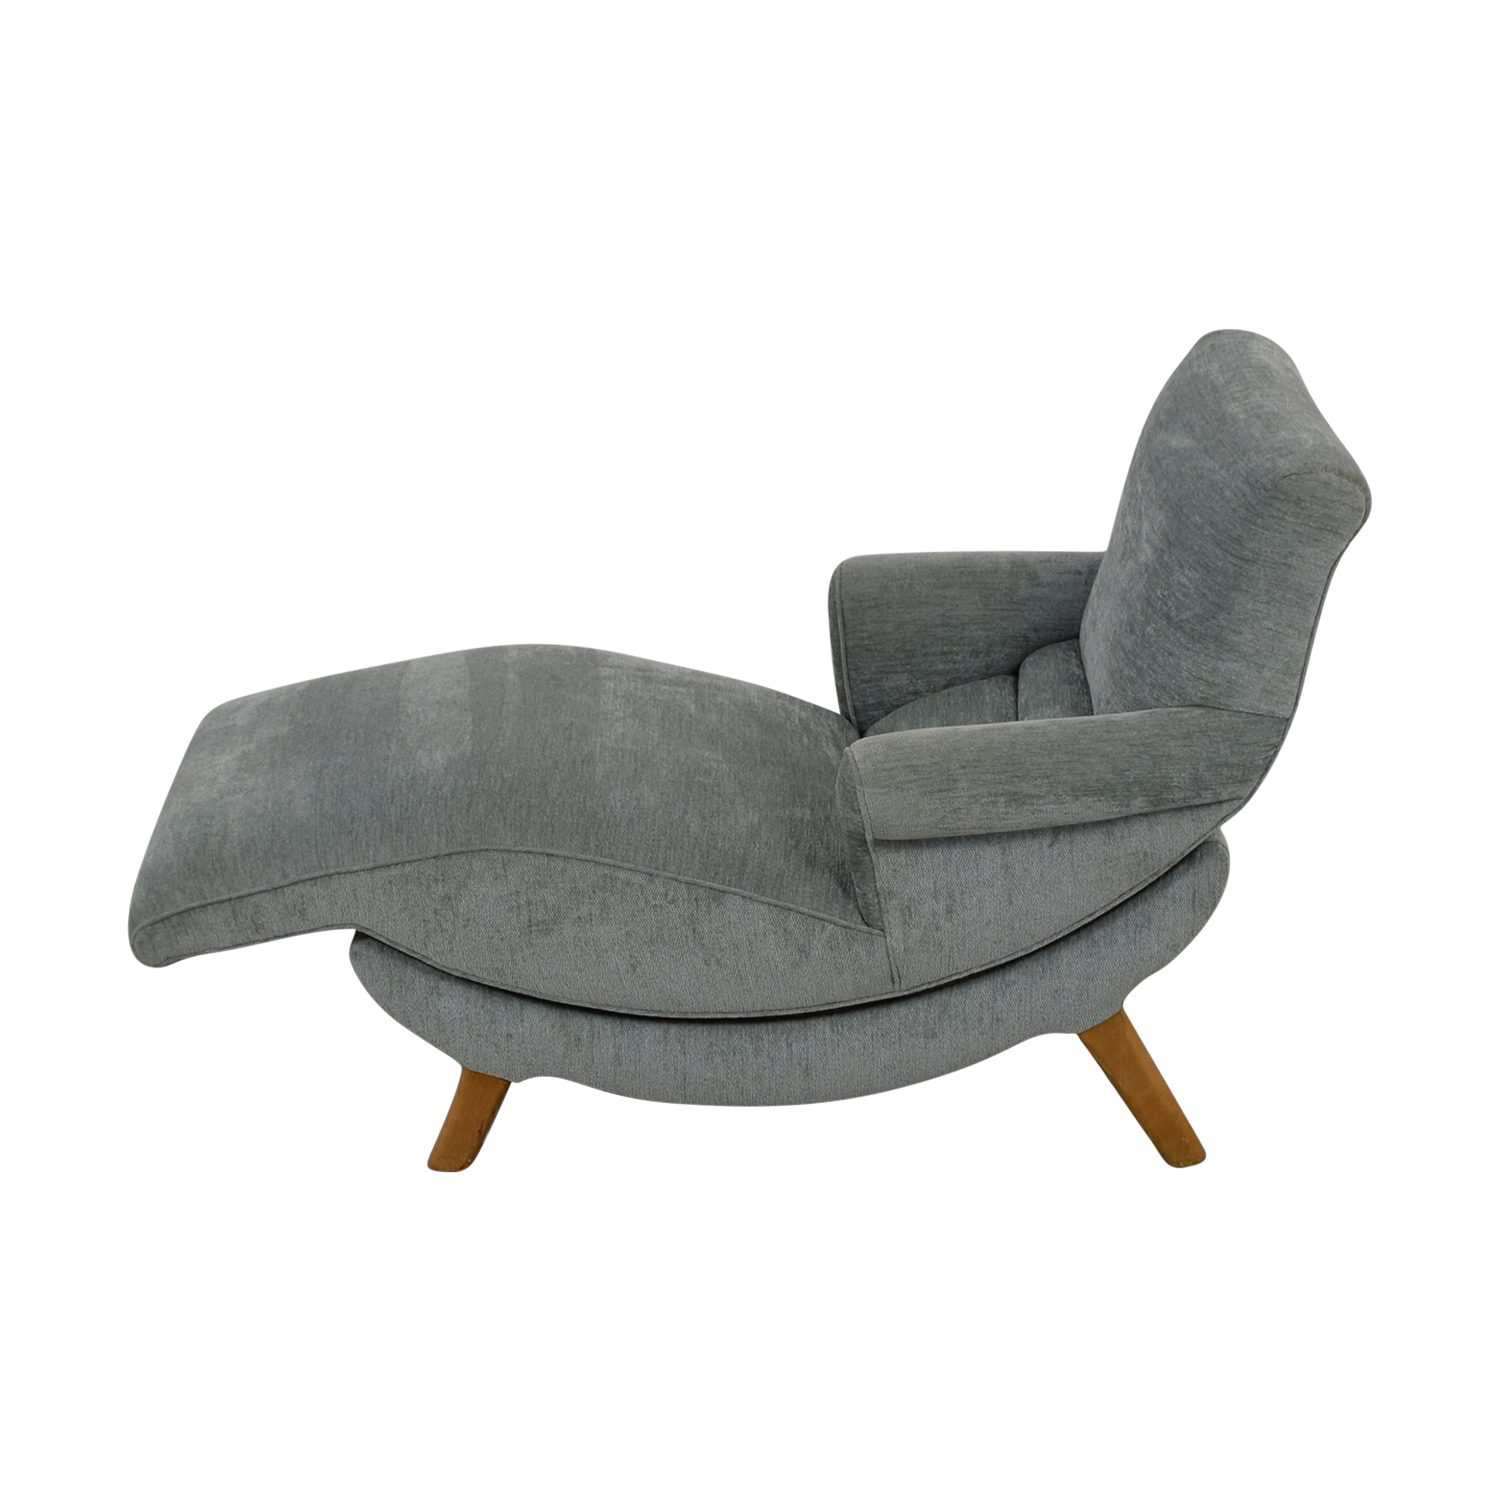 Contour Lounge Chair Company Lounge Chair Contour Lounge Chair Company